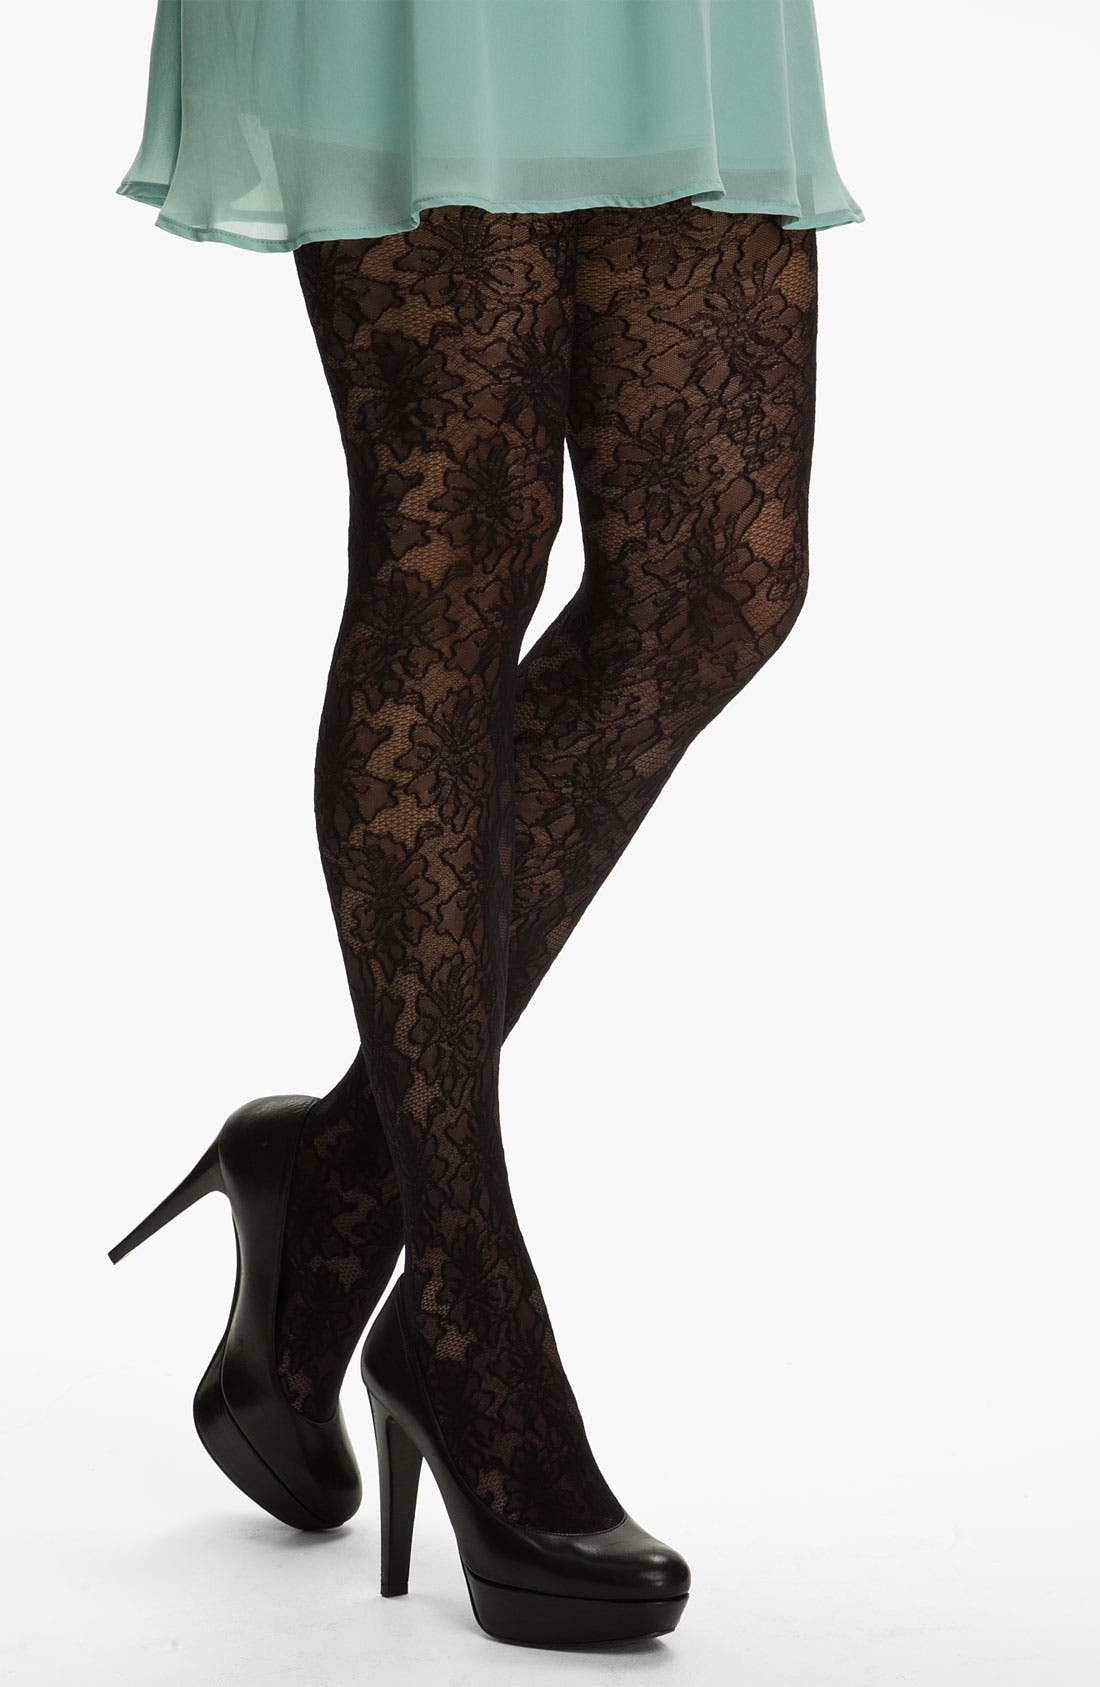 Main Image - Oroblu 'Collant Marie' Pantyhose